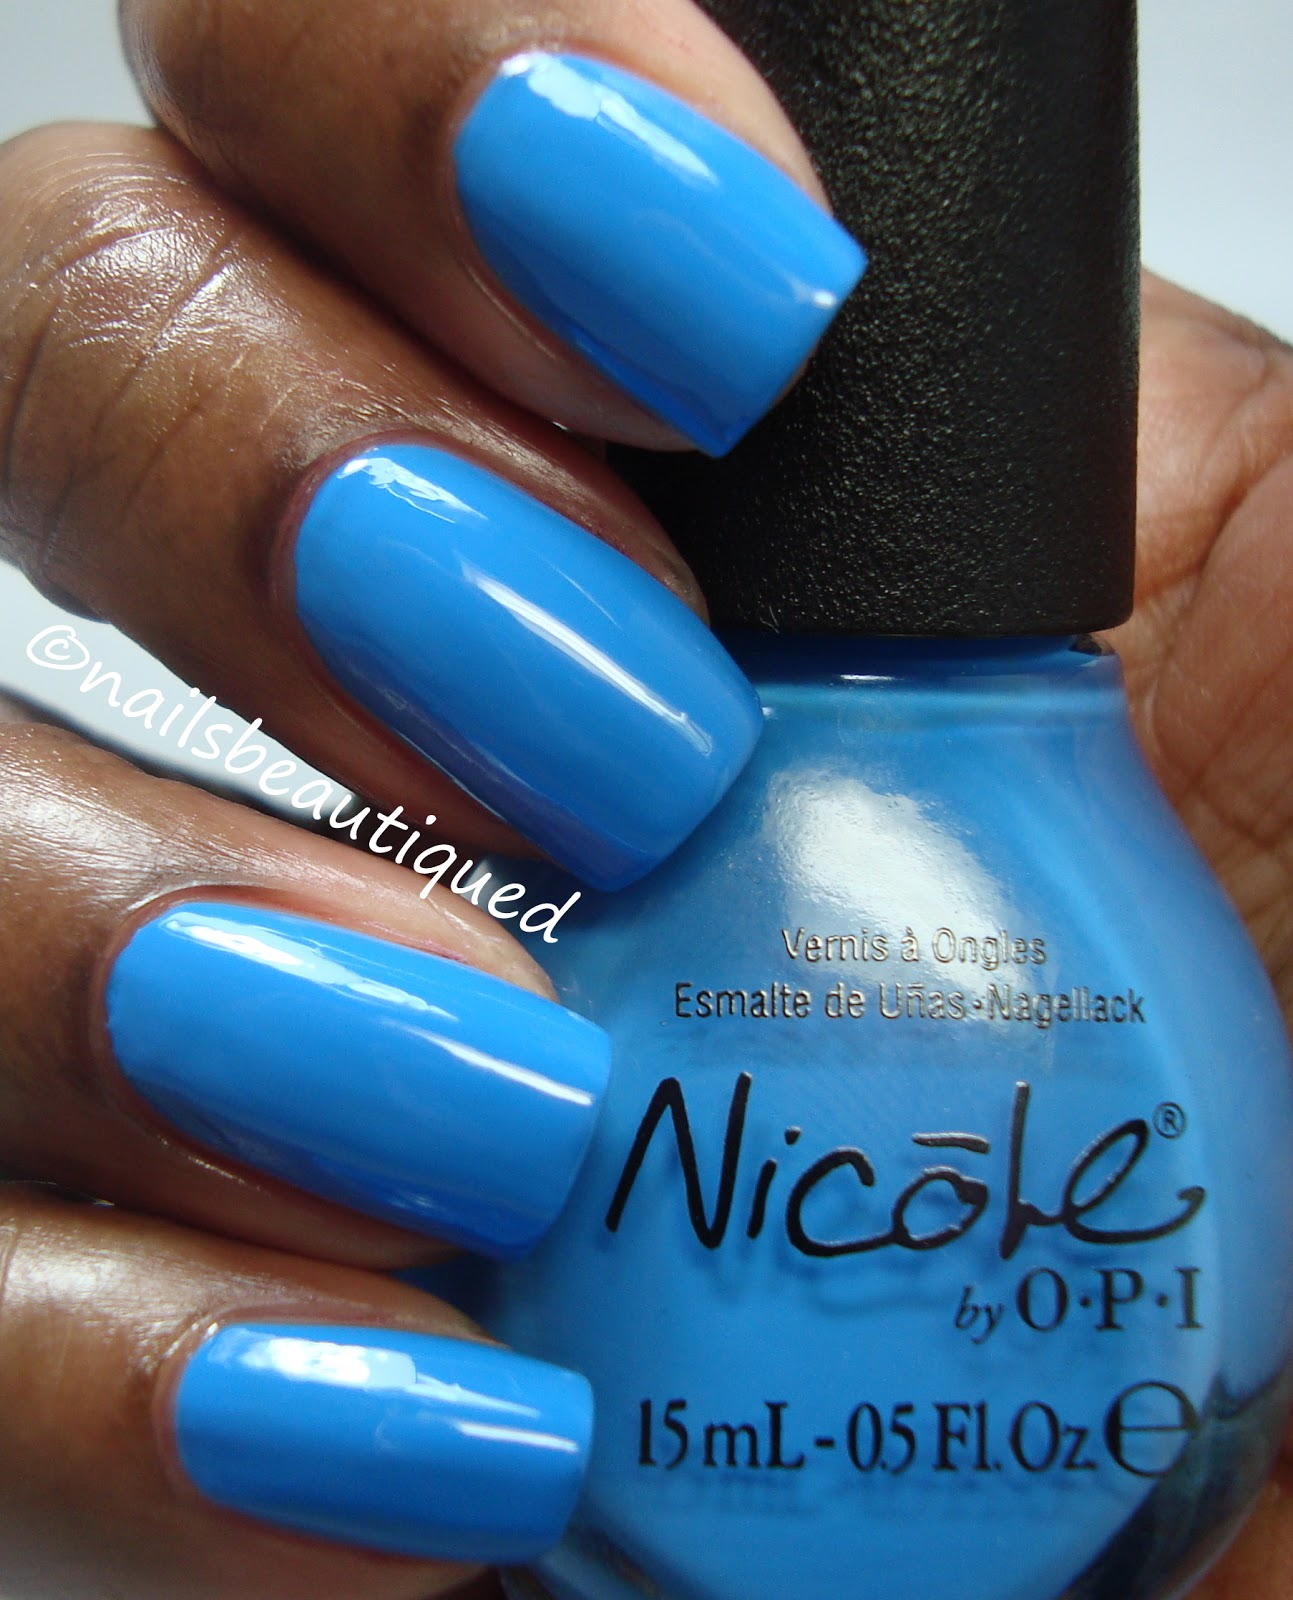 unbitten polish  nicole by opi exclusively at cvs  swatches and review